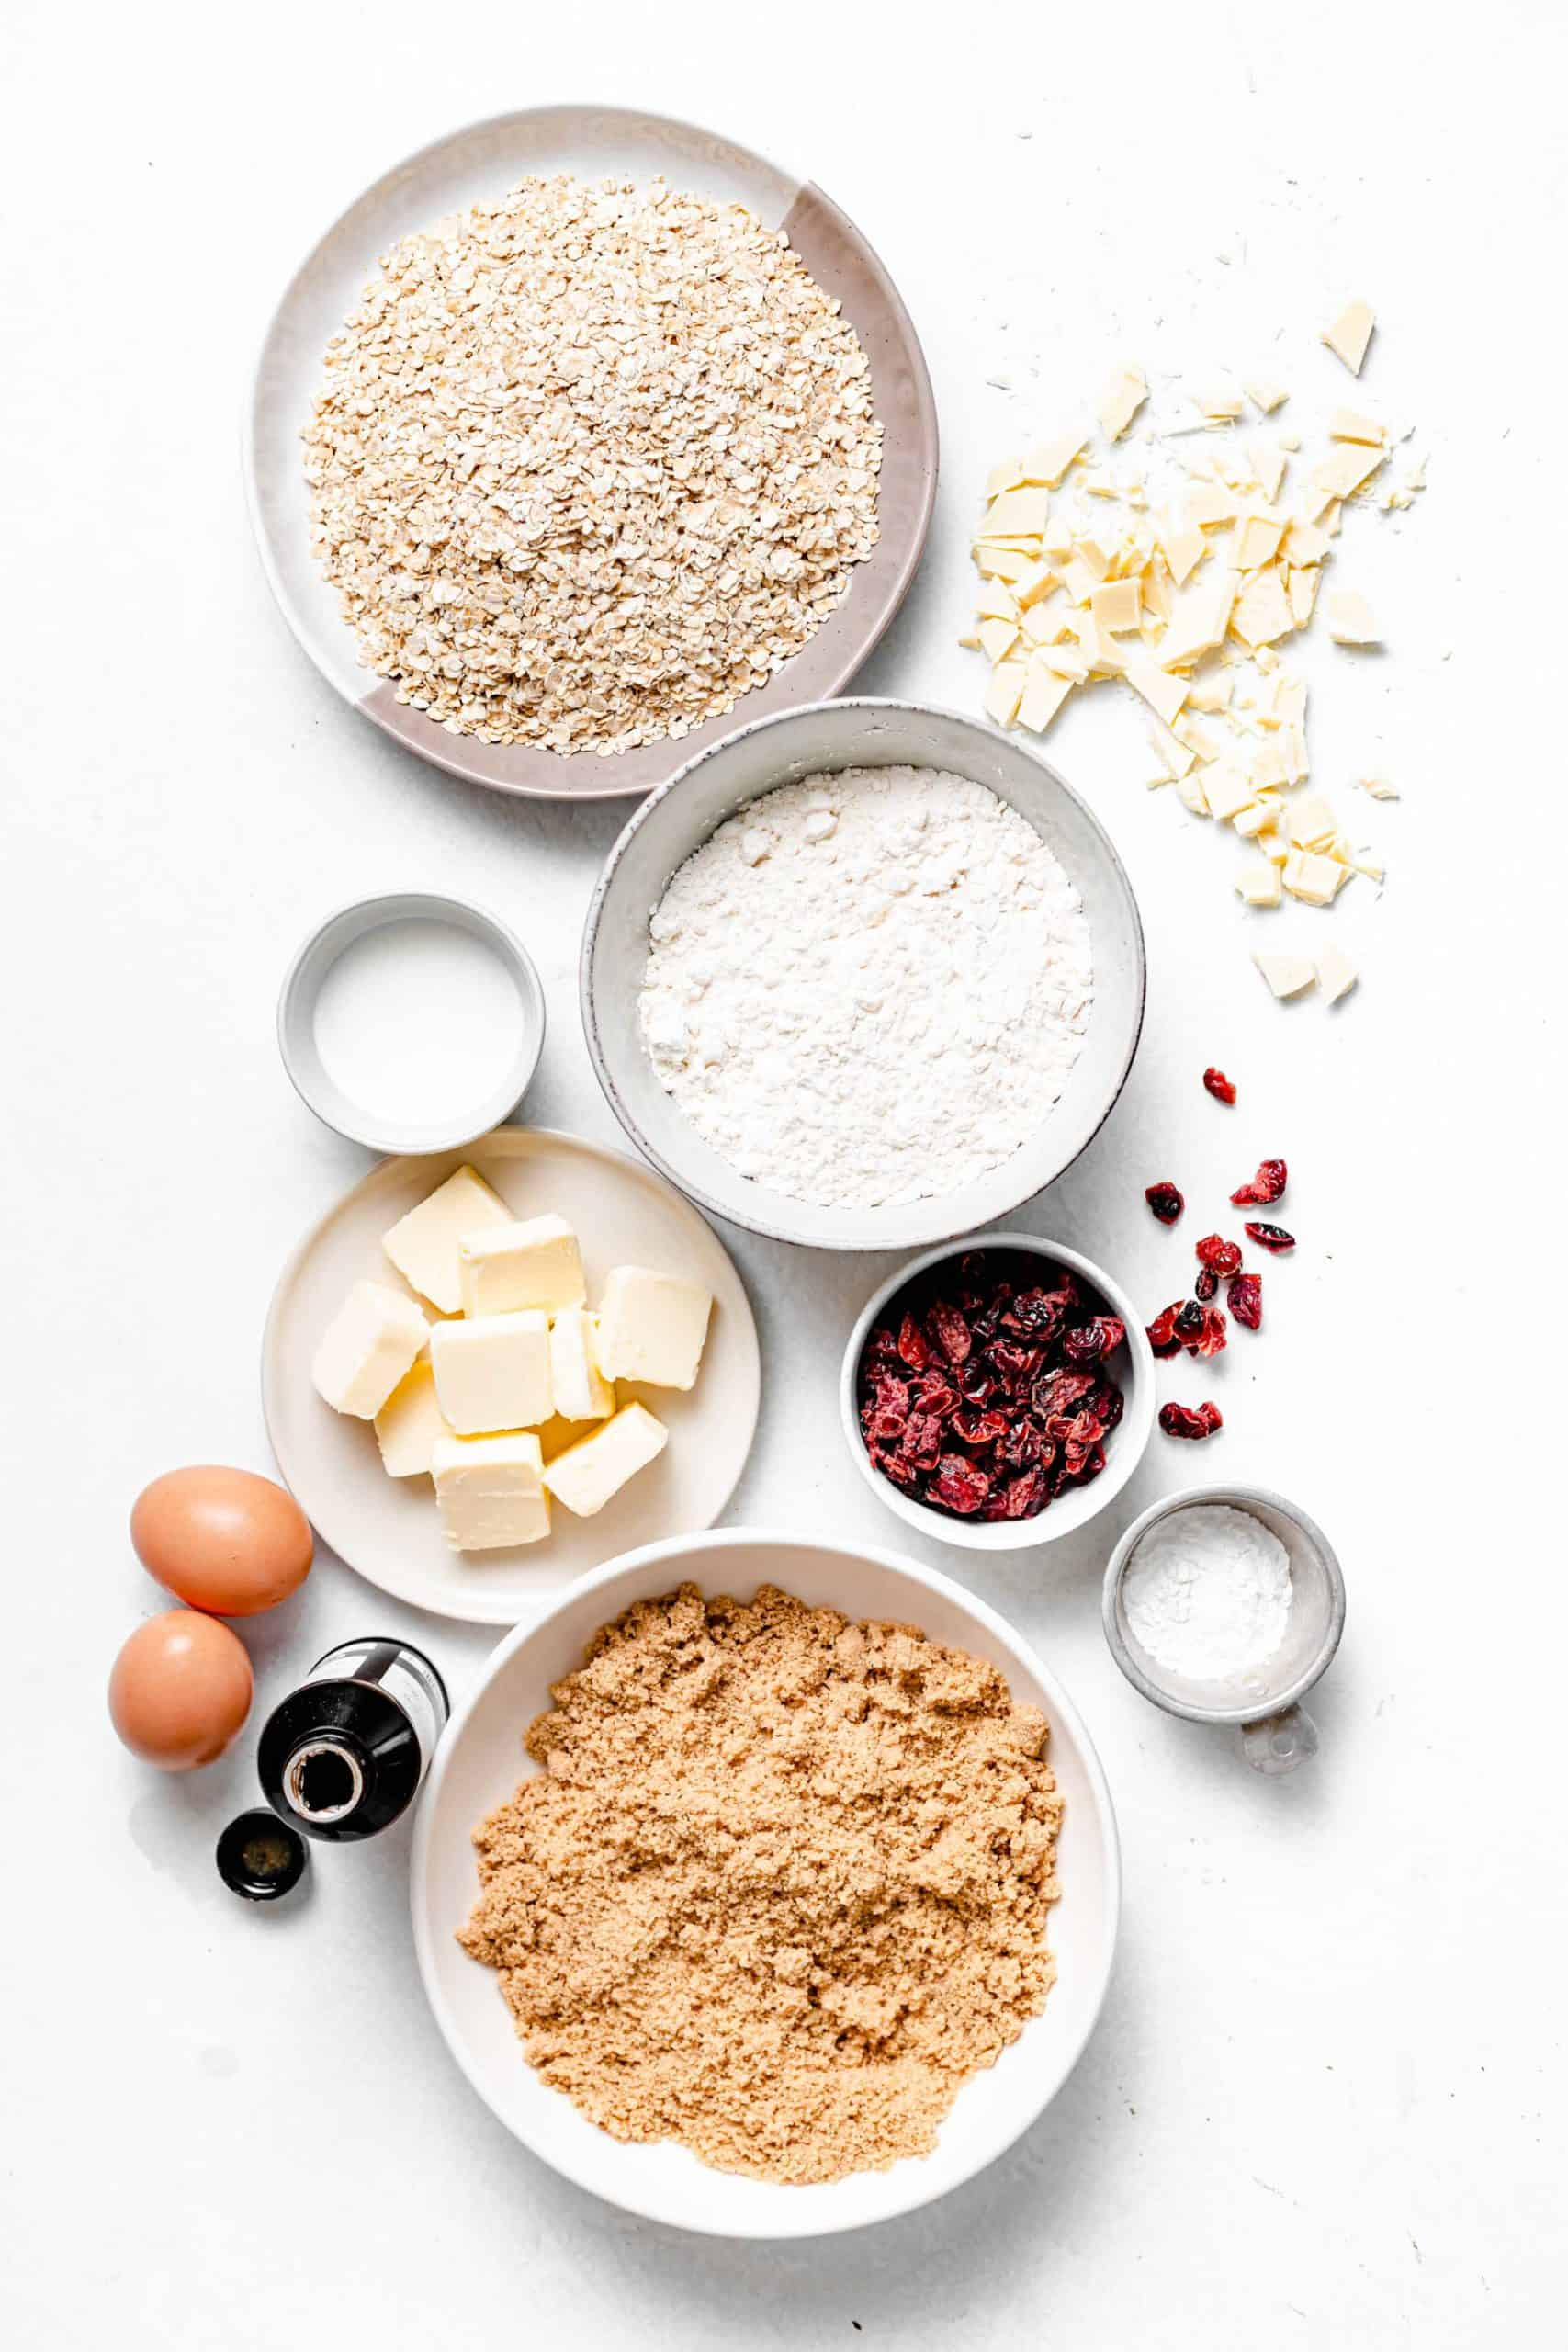 white chocolate cranberry oatmeal cookie ingredients